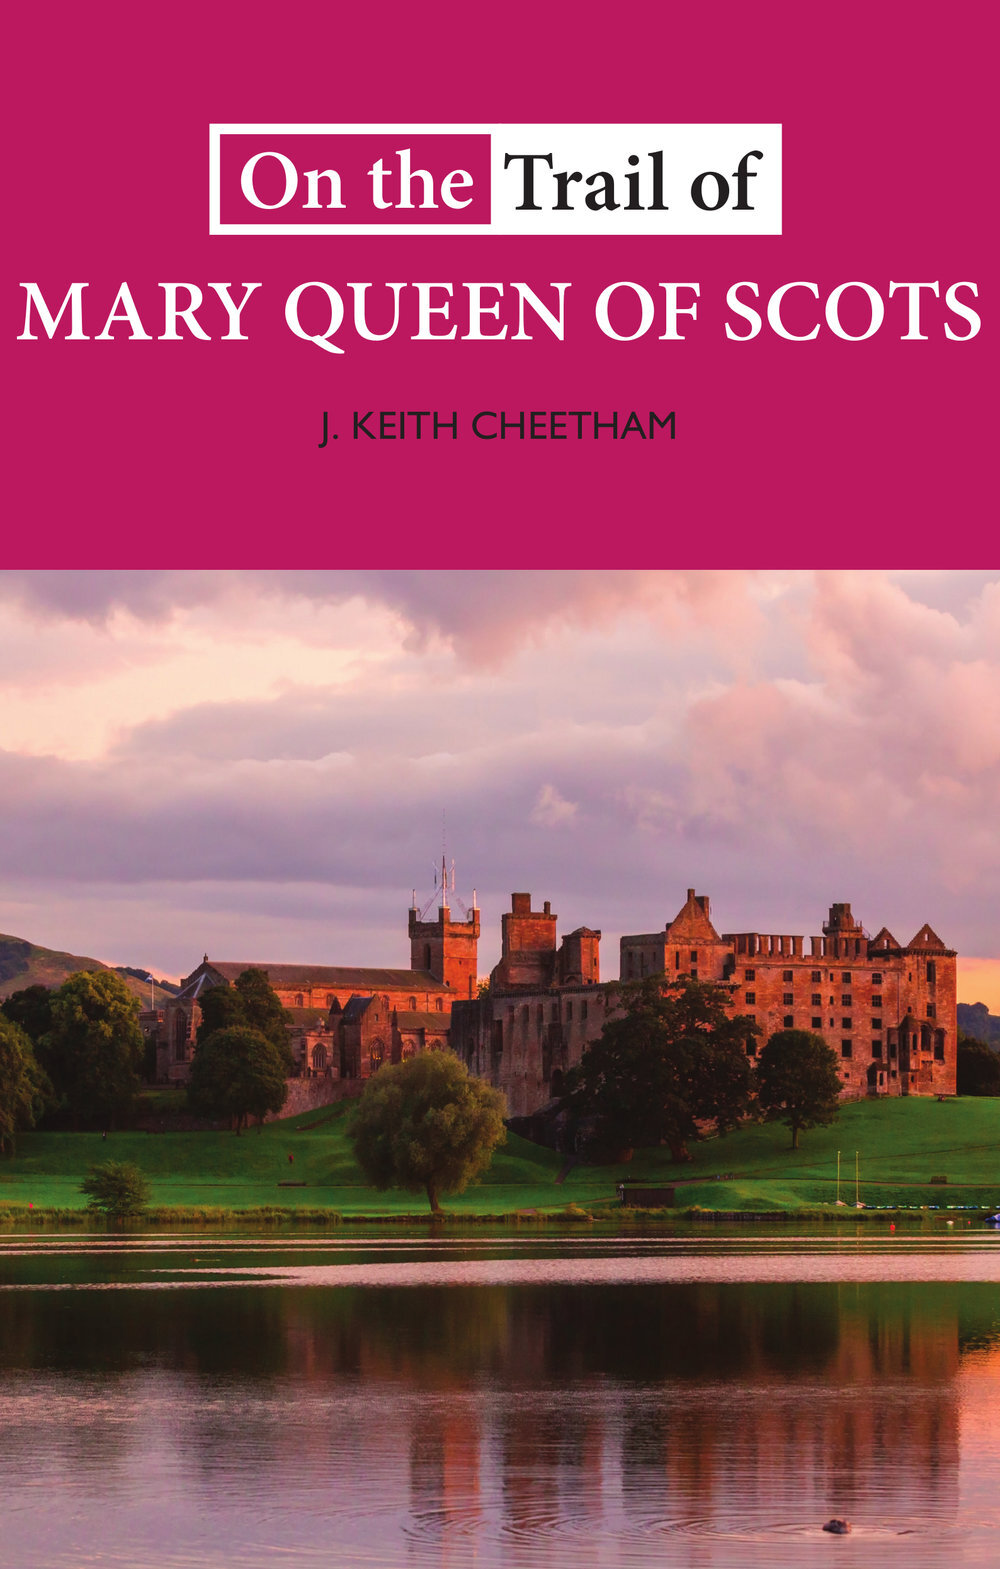 On+the+Trail+of+Mary+Queen+of+Scots+J+Keith+Cheetham+9781913025113+Luath+Press.jpg